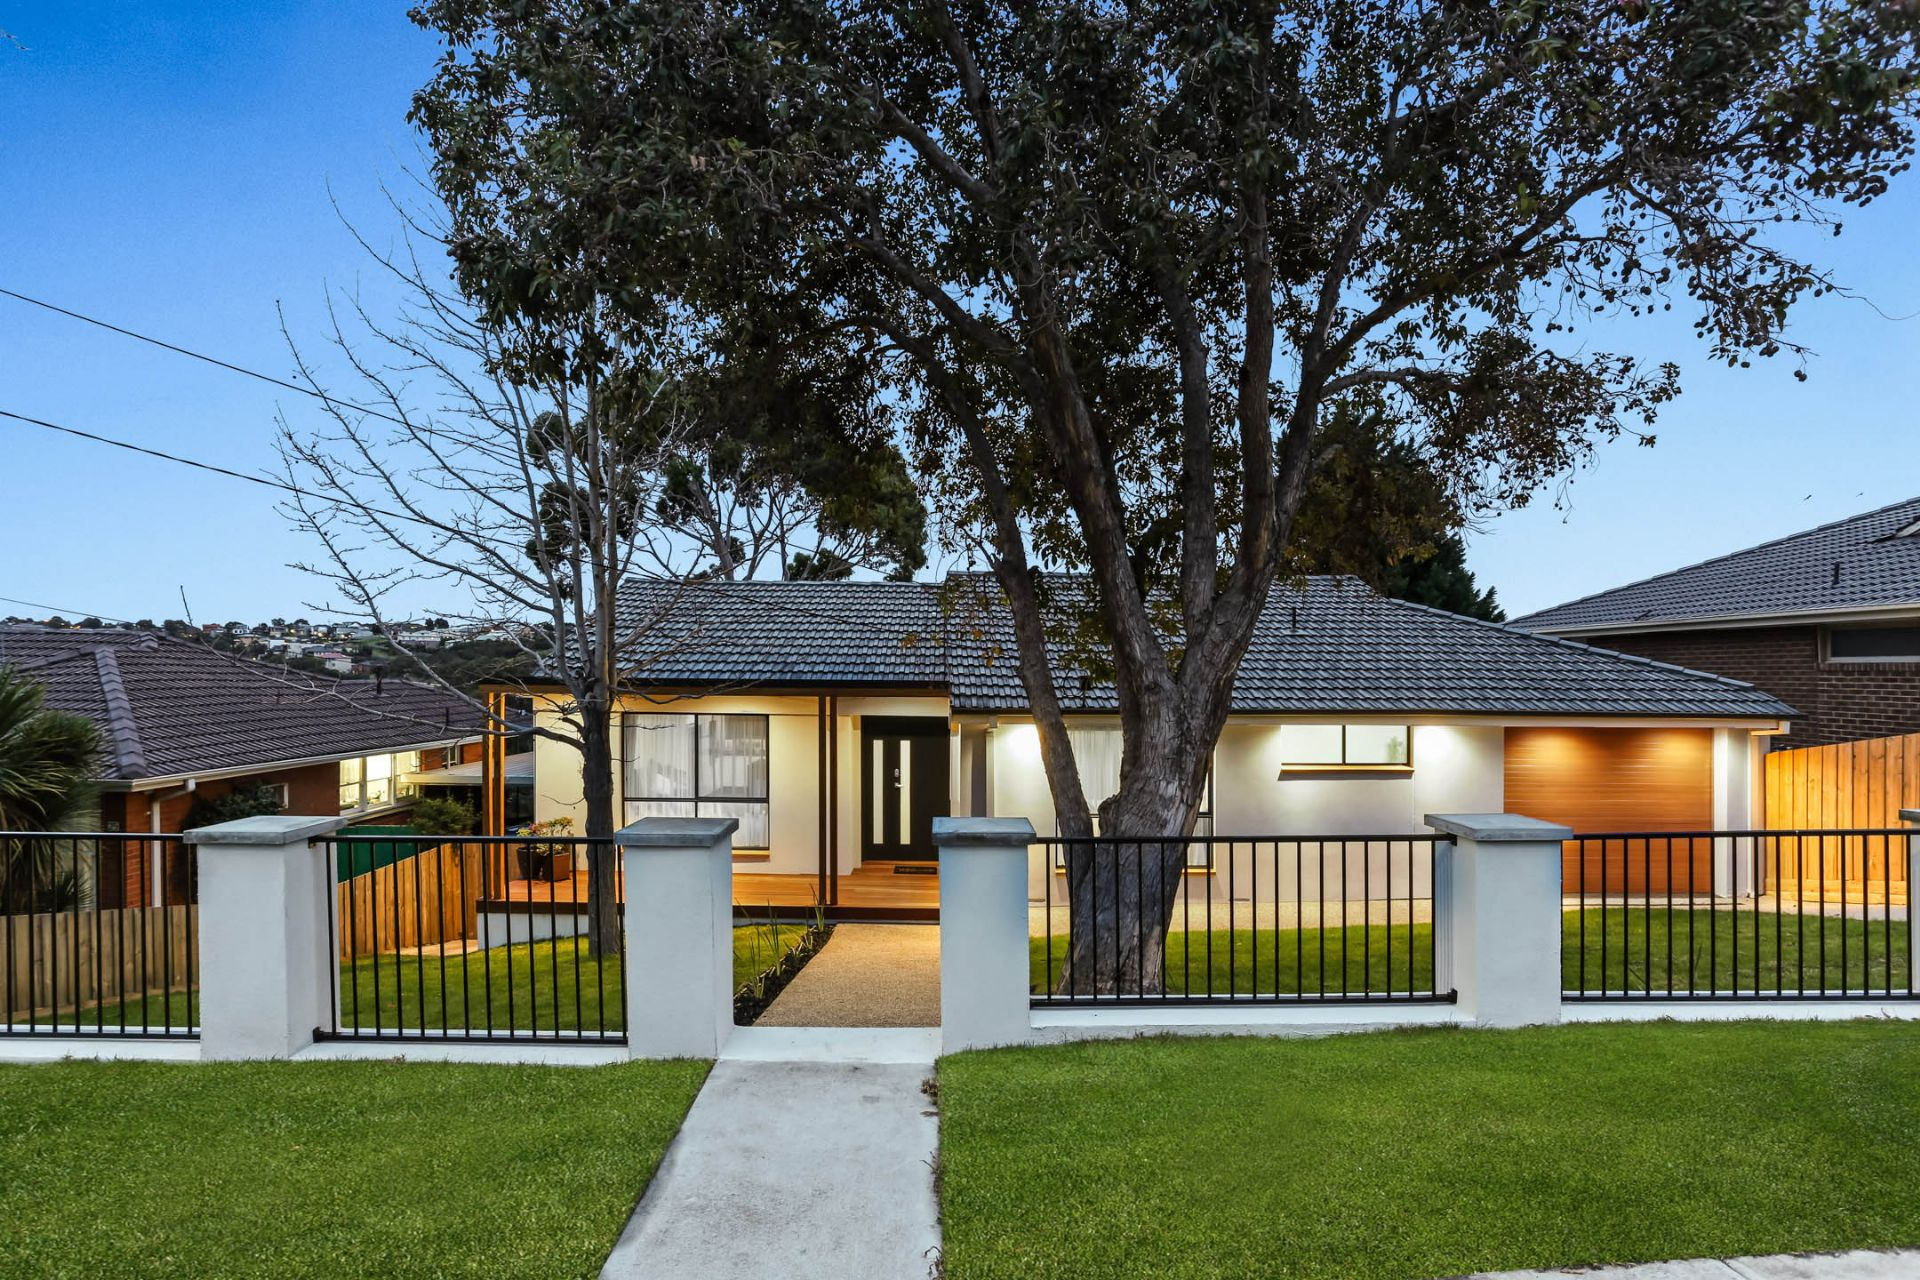 27 Centre Way, GLENROY, VIC, 3046 - Image